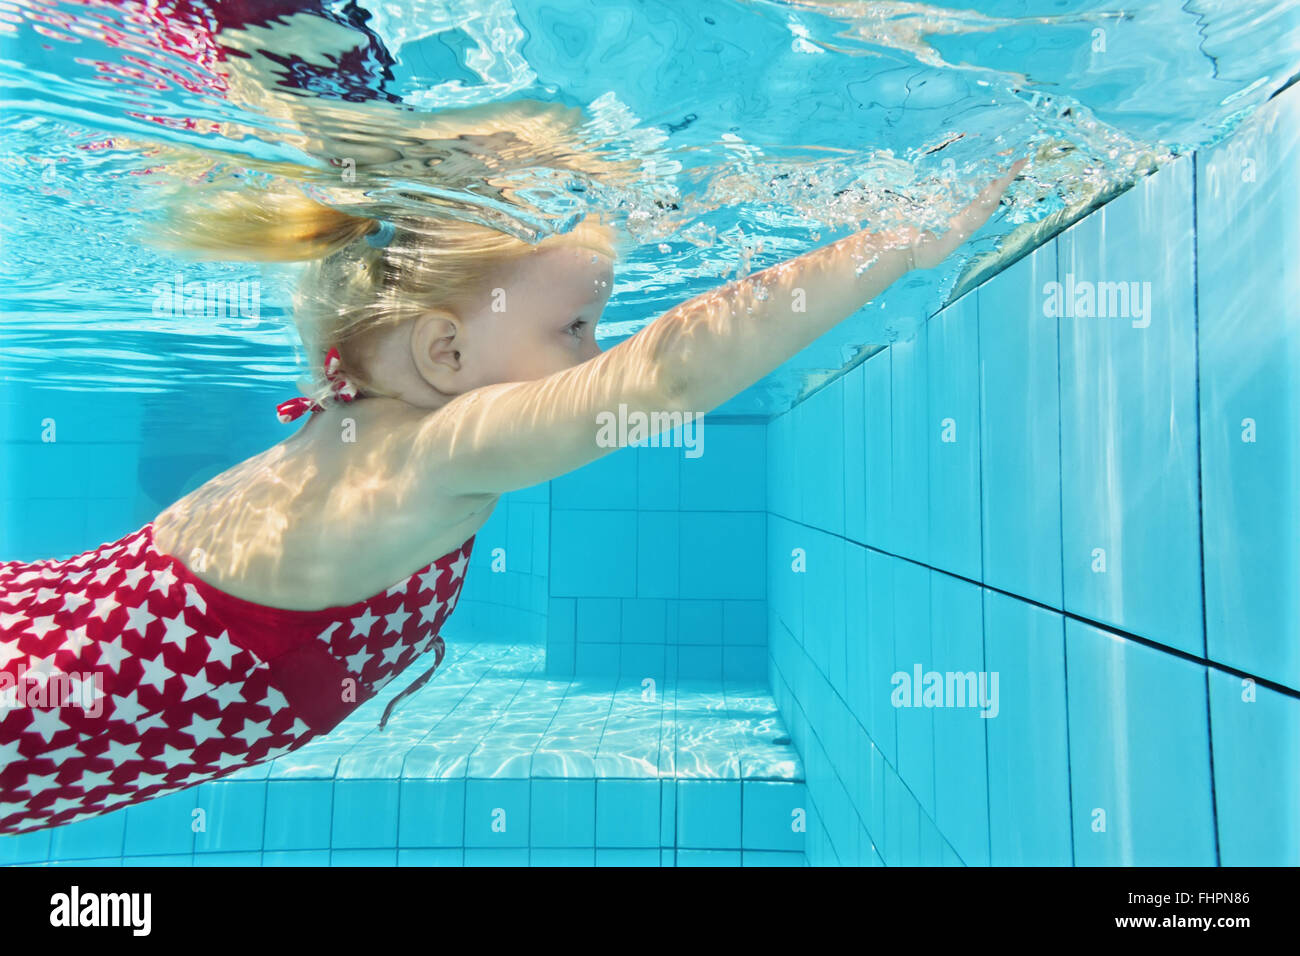 Child Swimming Lesson Girl Learning To Dive Underwater In Pool Stock Photo Royalty Free Image